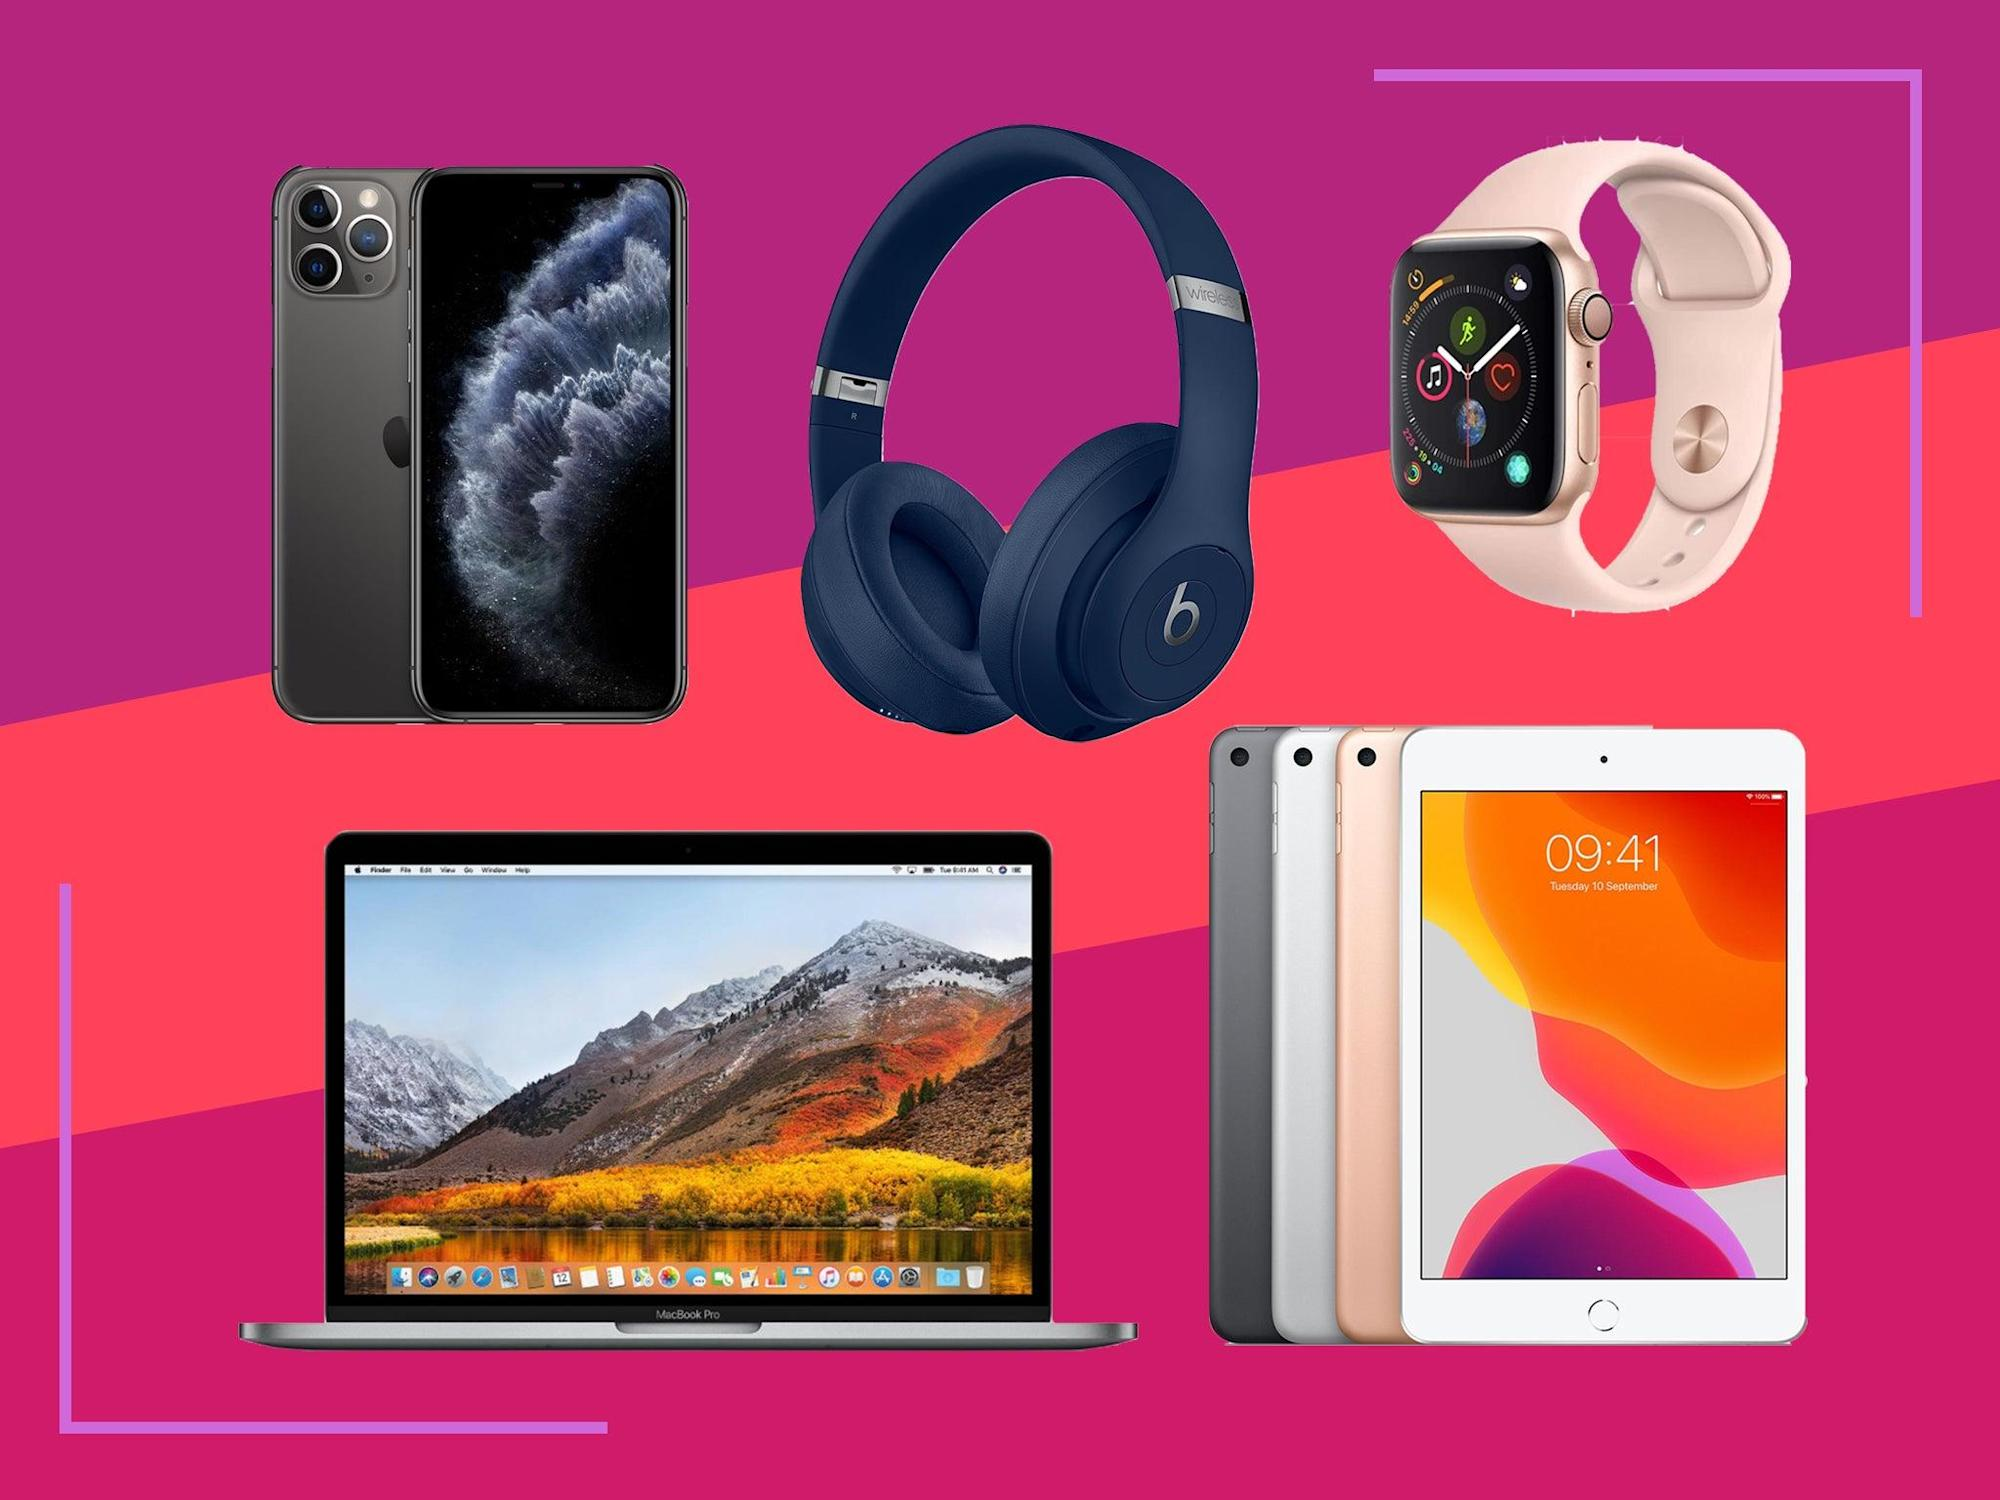 Best Apple Black Friday deals 2020: Early offers on AirPods, iPhones and Macbooks